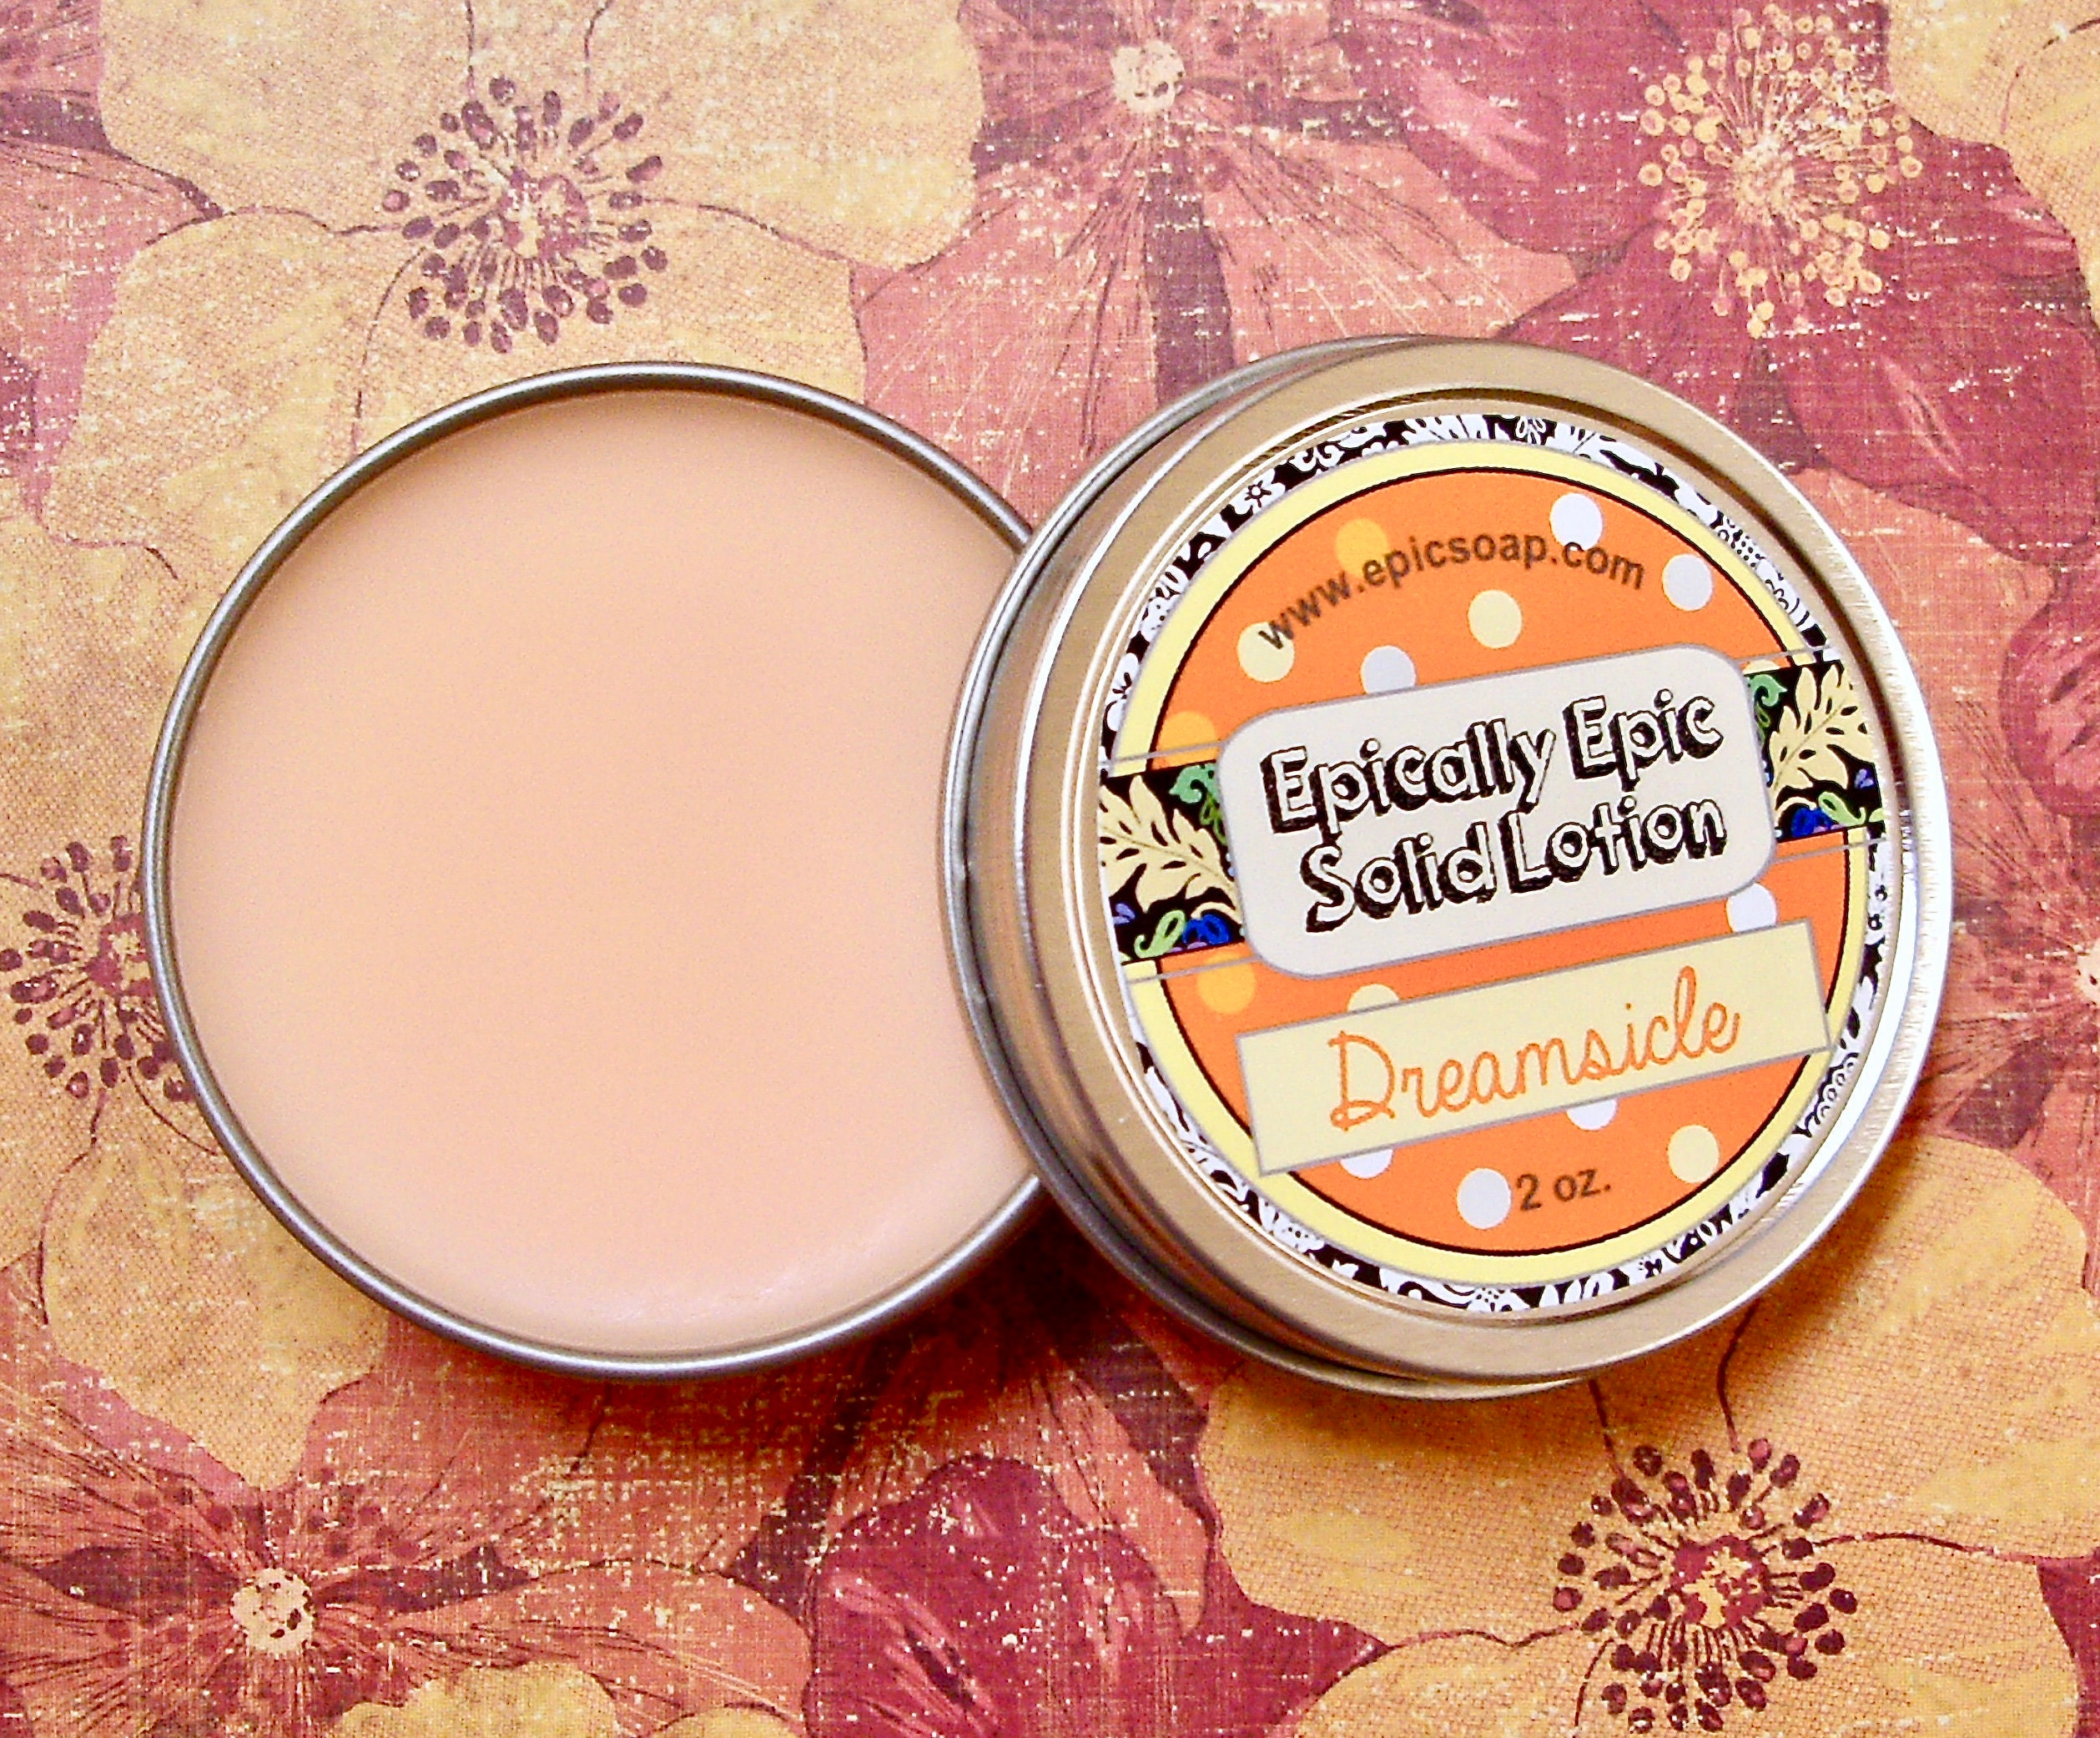 Dreamsicle,Many,Purpose,Solid,Lotion,-,Limited,Edition,Into,the,Summer,Scent,Orange,&,Vanilla,Cream,Bath_And_Beauty,hand_cream,body_butter,lotion_bar,epically_epic,solid_lotion,vegan_lotion,cuticle_butter,scented_lotion,into_the_summer,creamsicle,orangesicle,orange_vanilla,orange_marshmallow,macadamia butter,jojoba,candelilla wax,coconut oil,olive squal